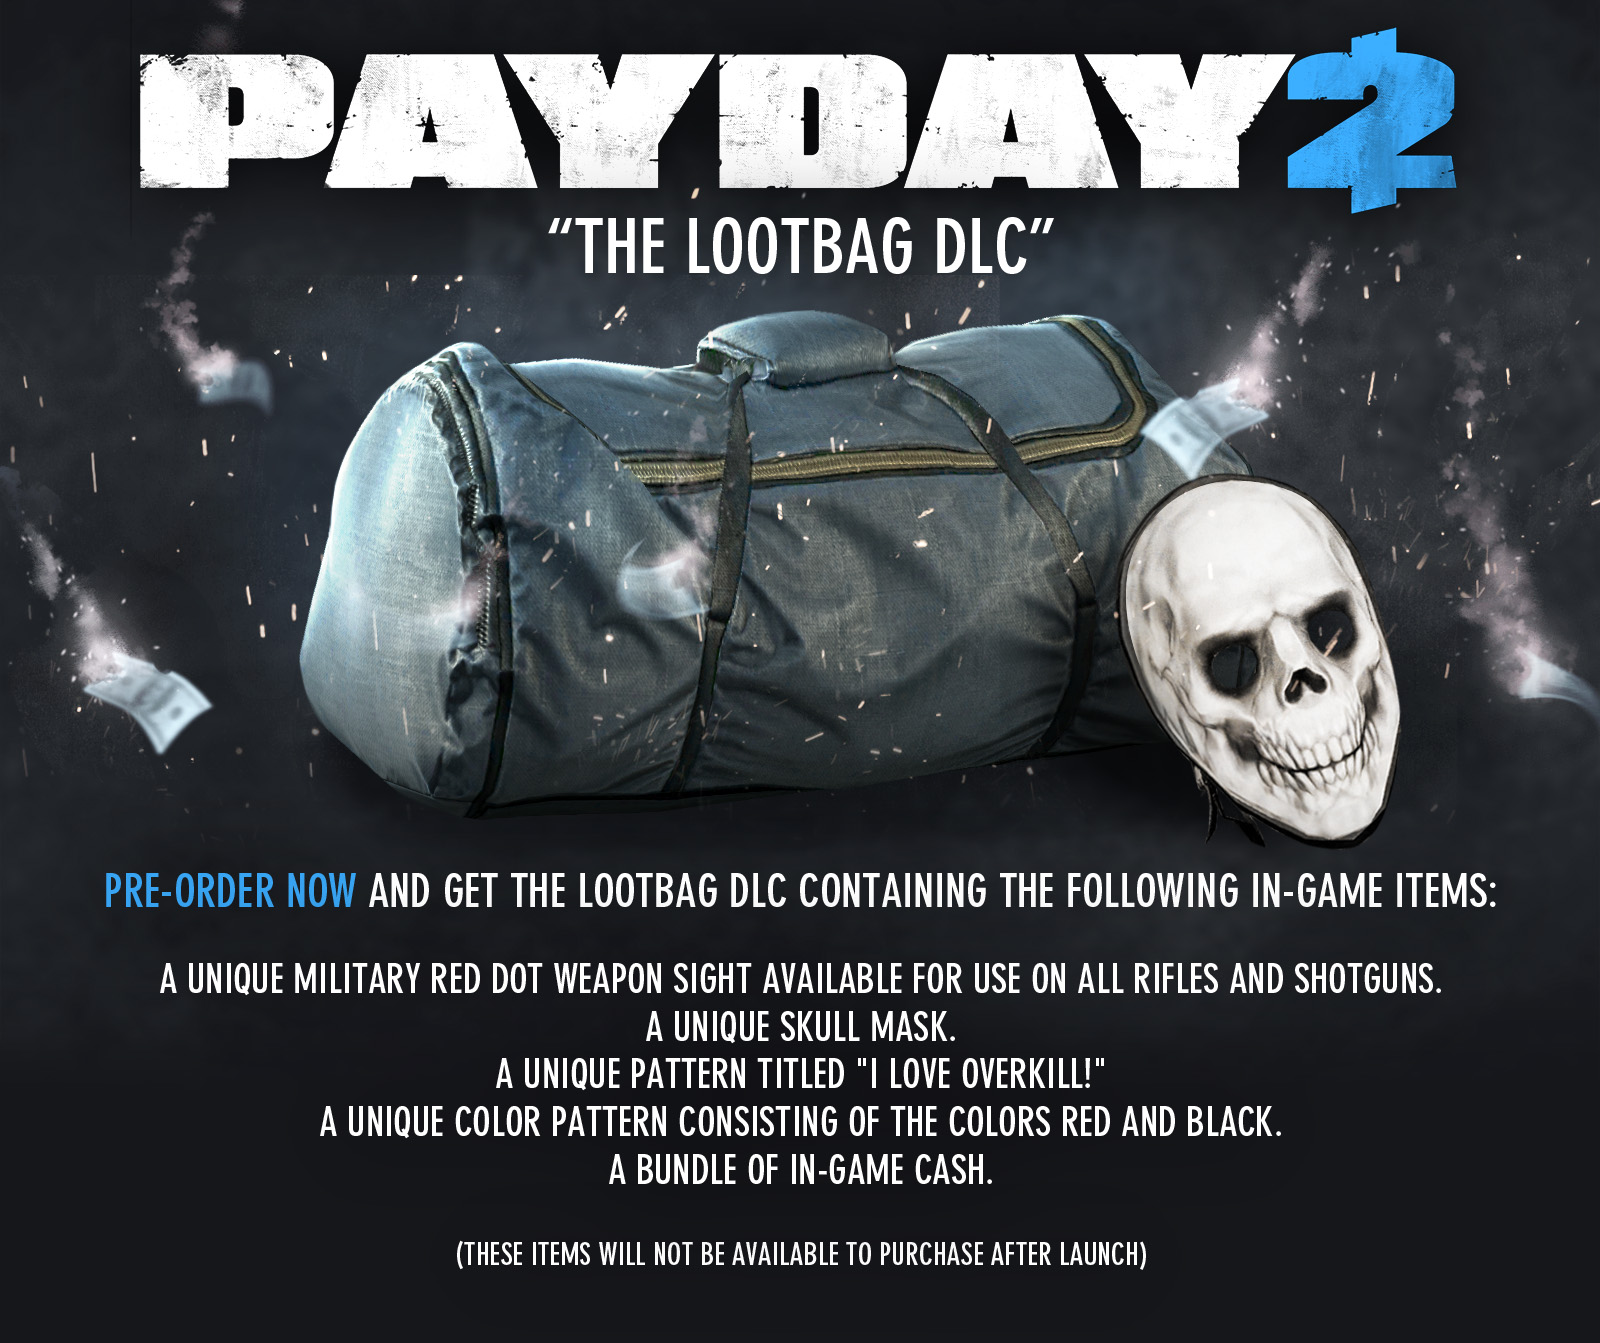 Payday 2 (Includes Lootbag DLC)